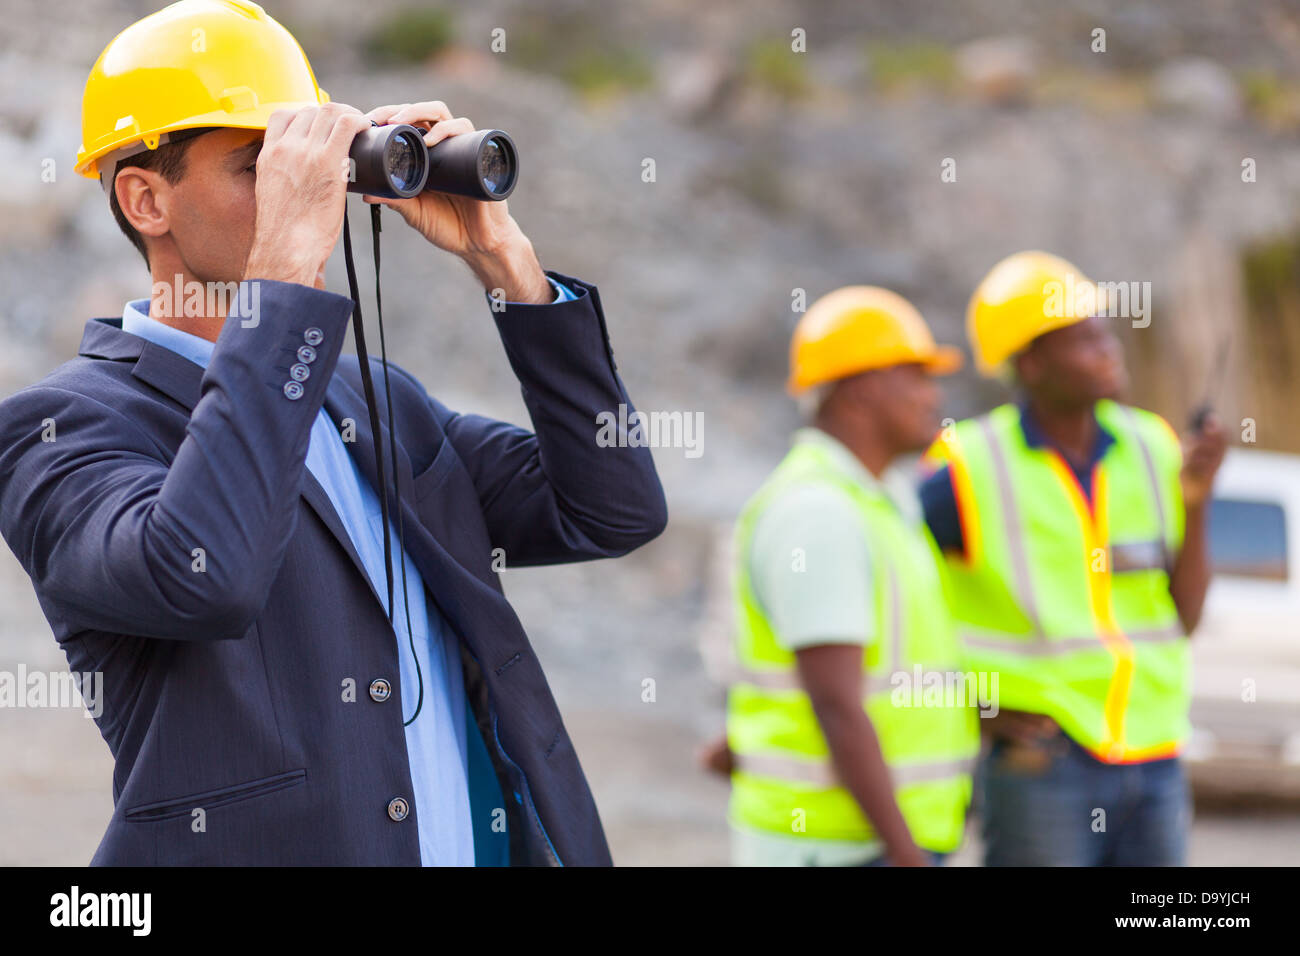 mine manager with binoculars at mining site - Stock Image